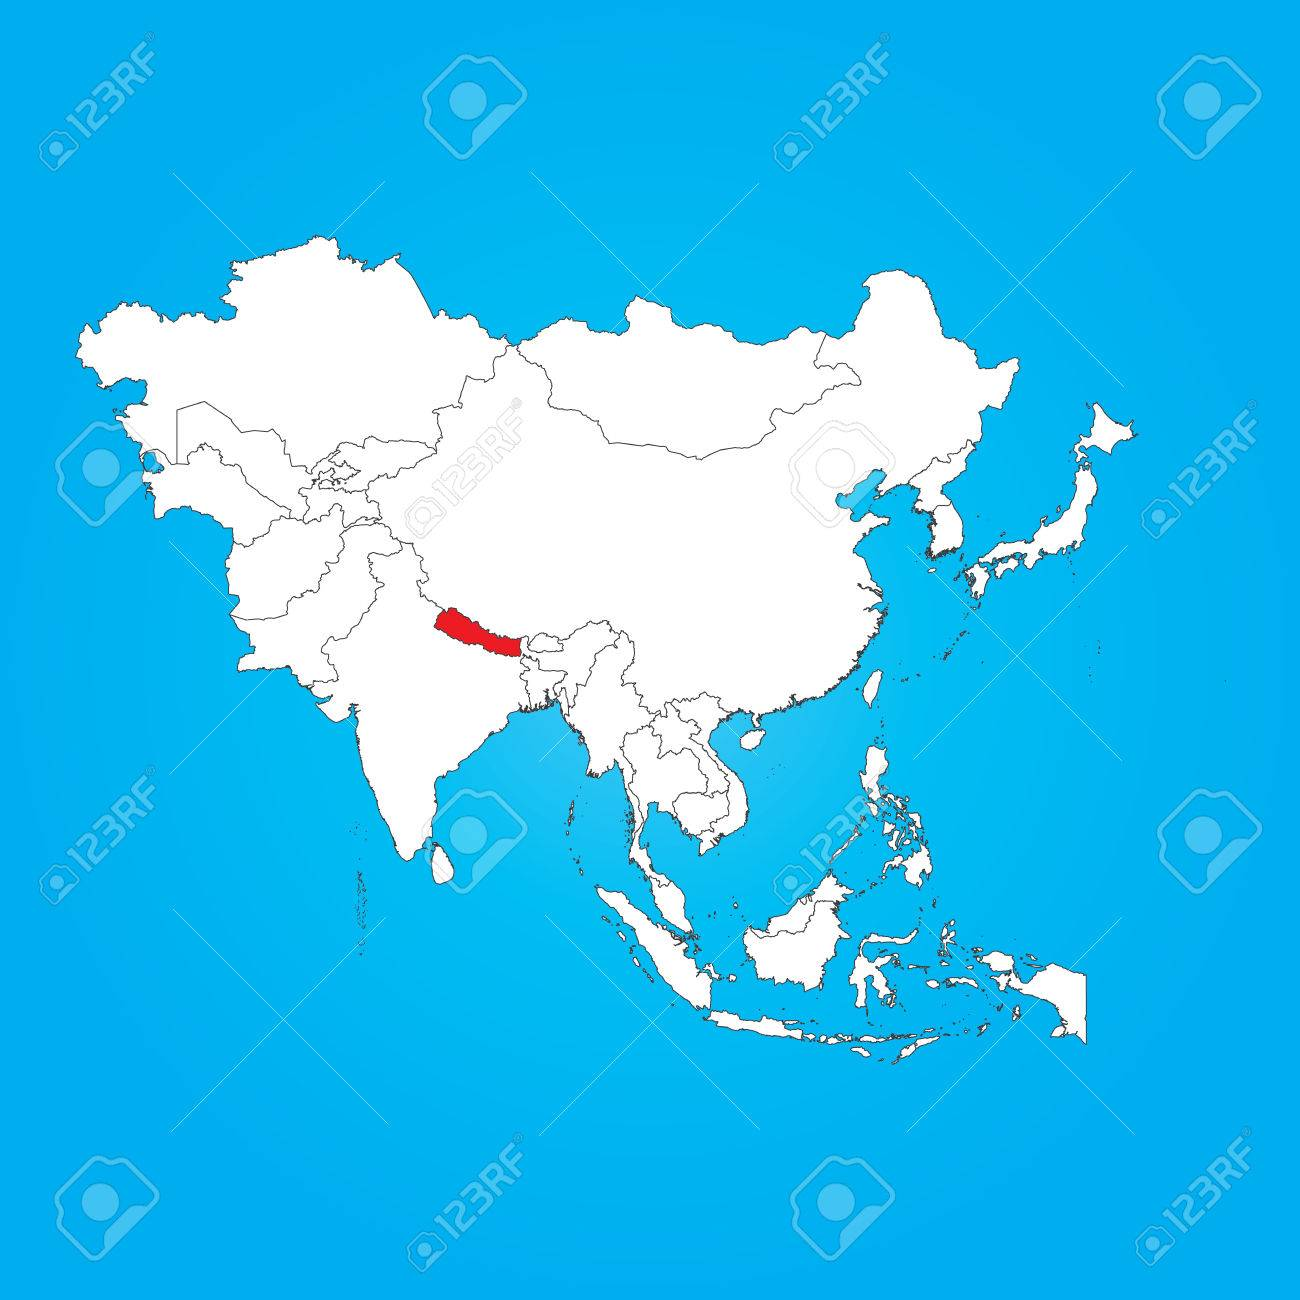 A Map Of Asia With A Selected Country Of Nepal Royalty Free Cliparts ...